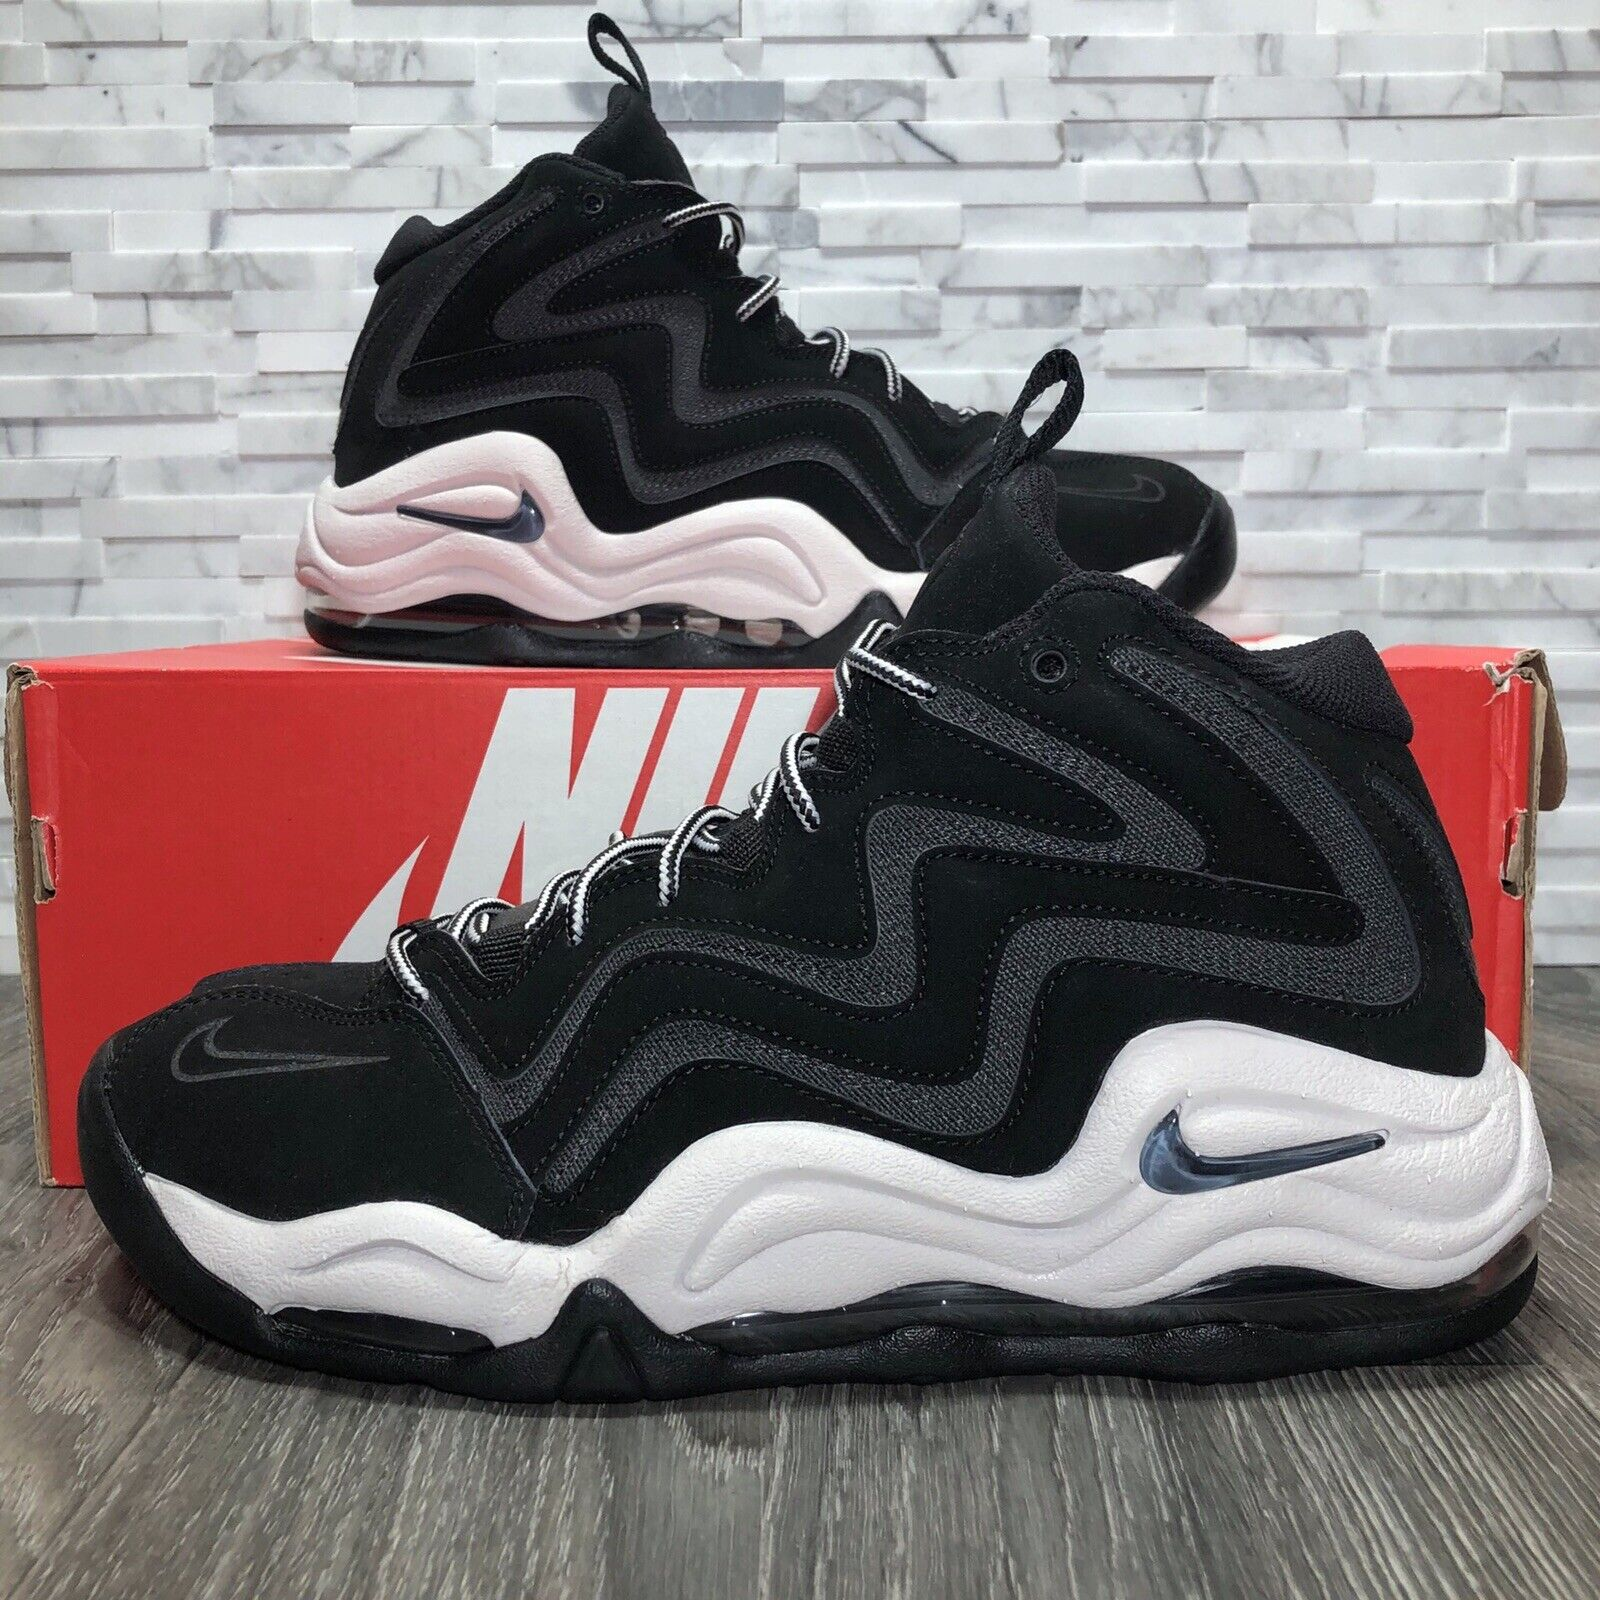 info for 5f4ae bfce3 Nike Air Pippen Black   Anthracite (325001-004) Basketball shoes shoes  shoes Mens